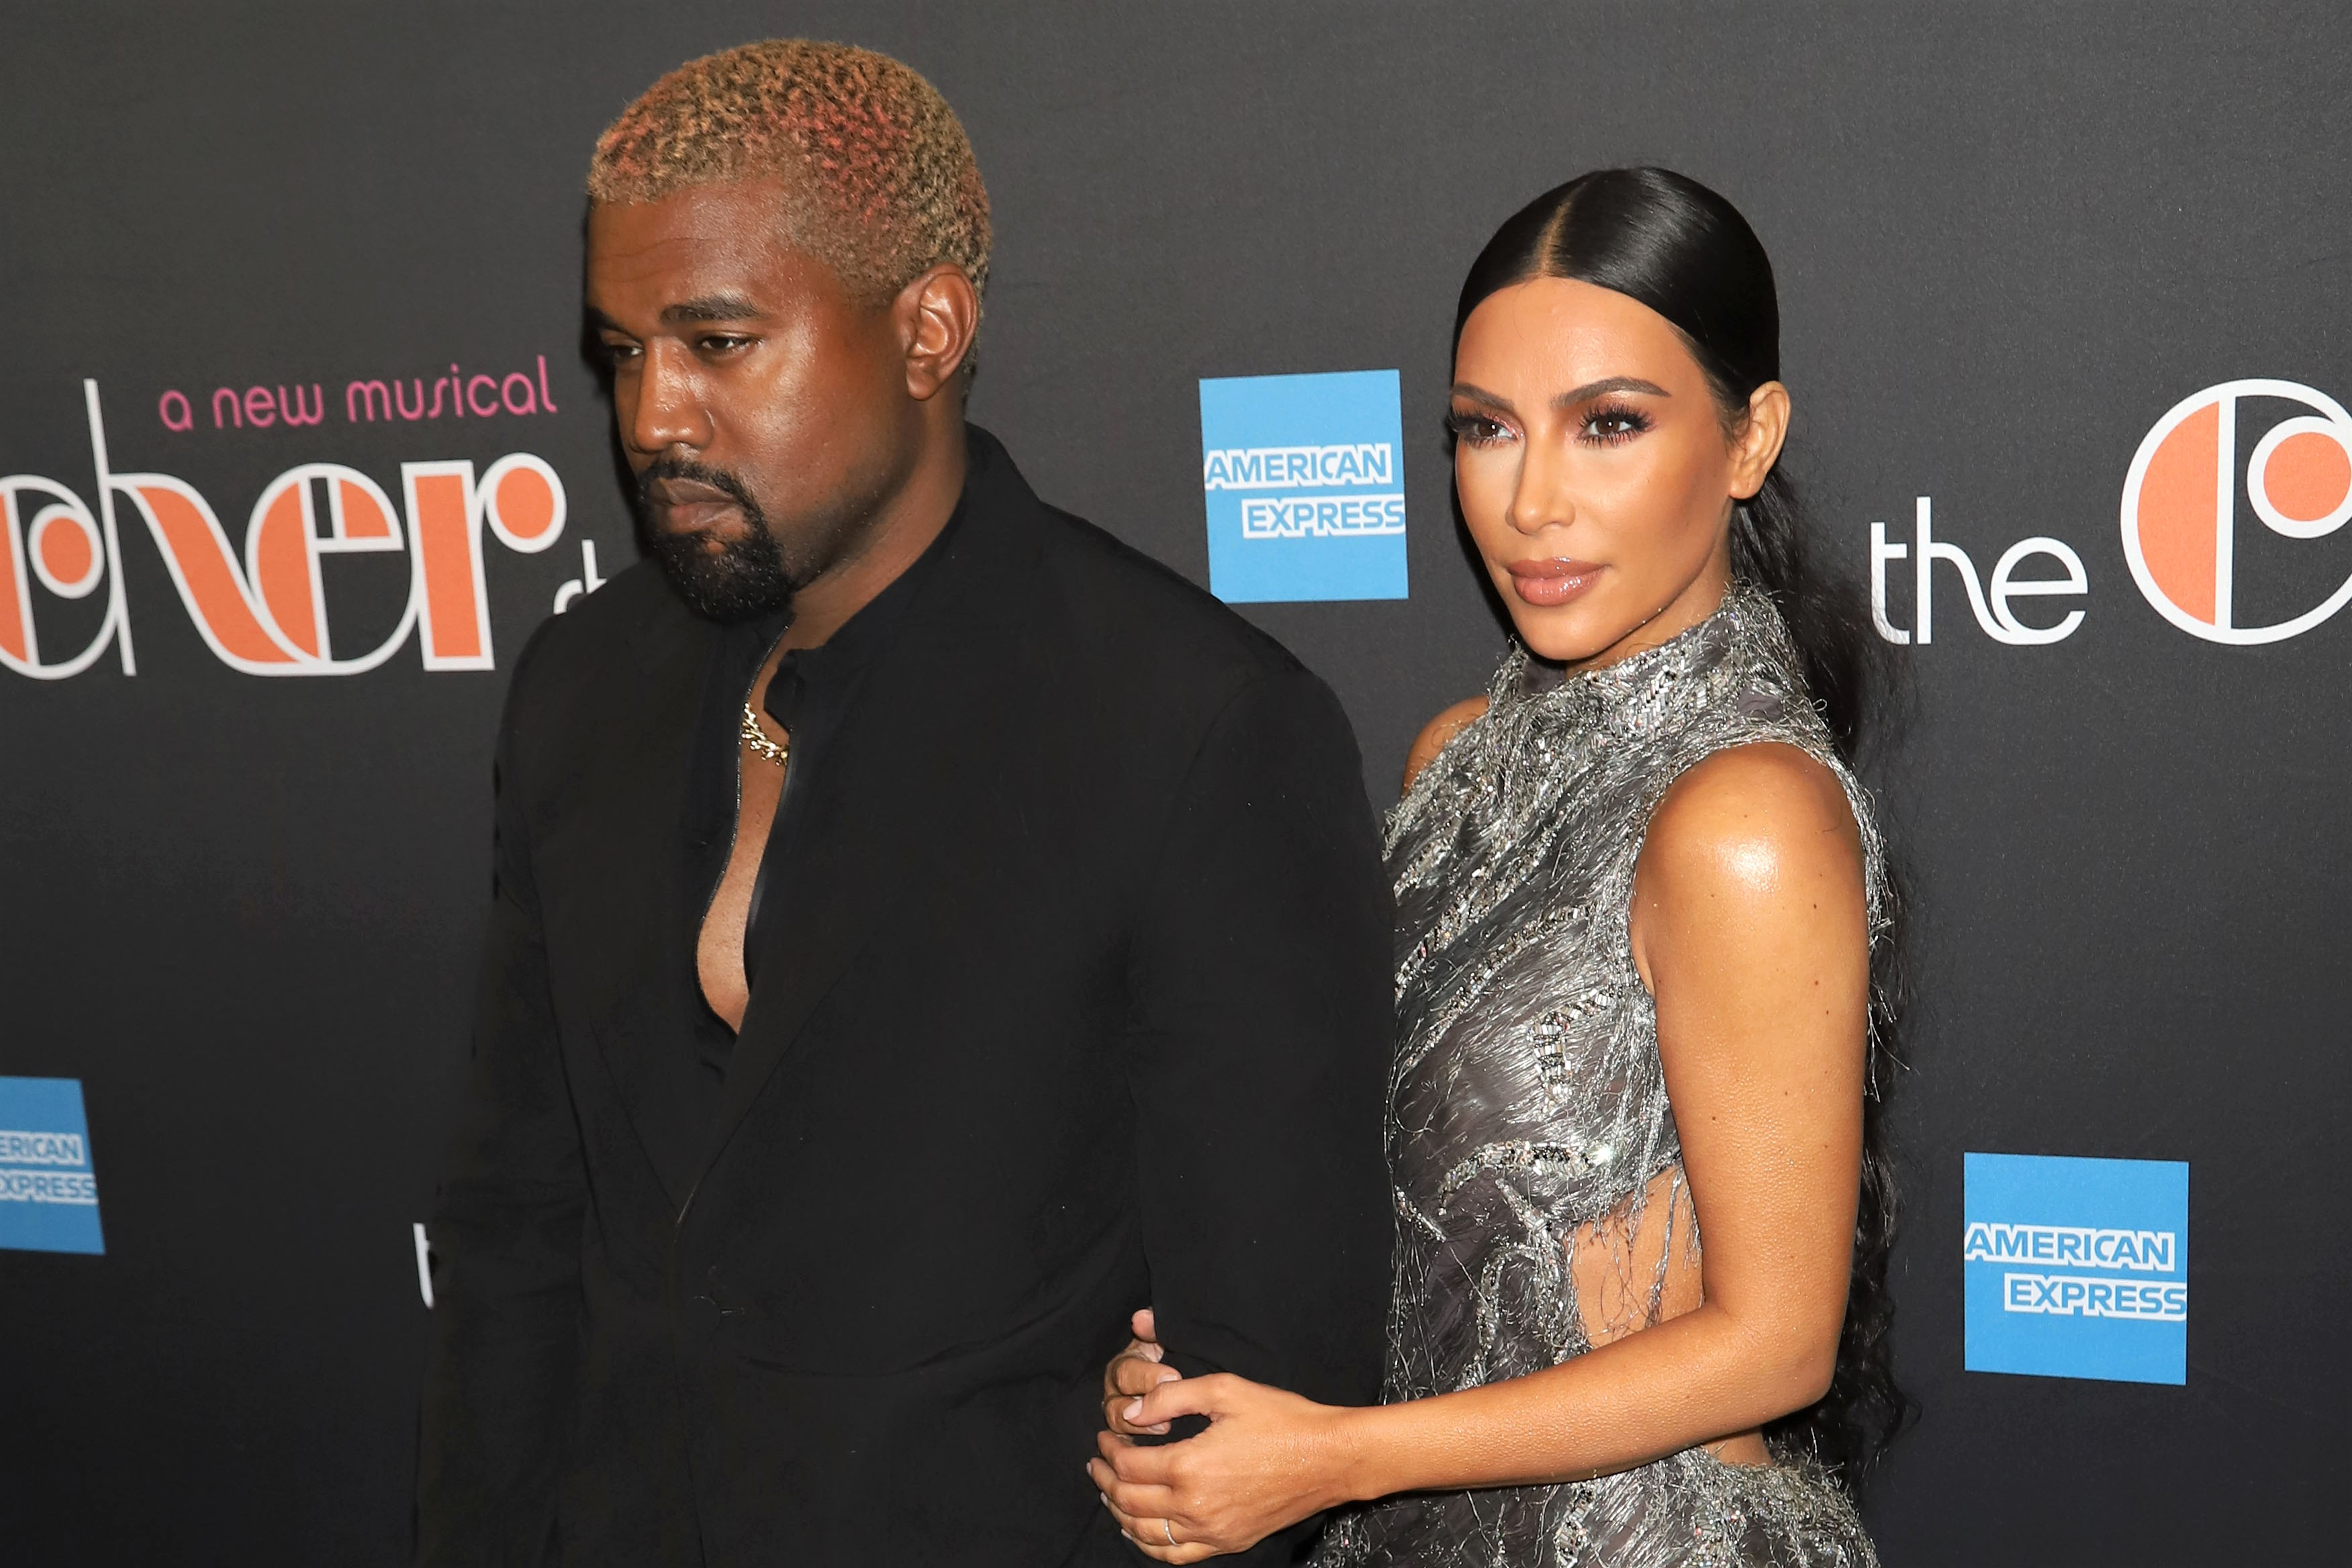 Meet Psalm! Kim Kardashian Shares First Photo of Newborn Son and Reveals His Very Unique Name